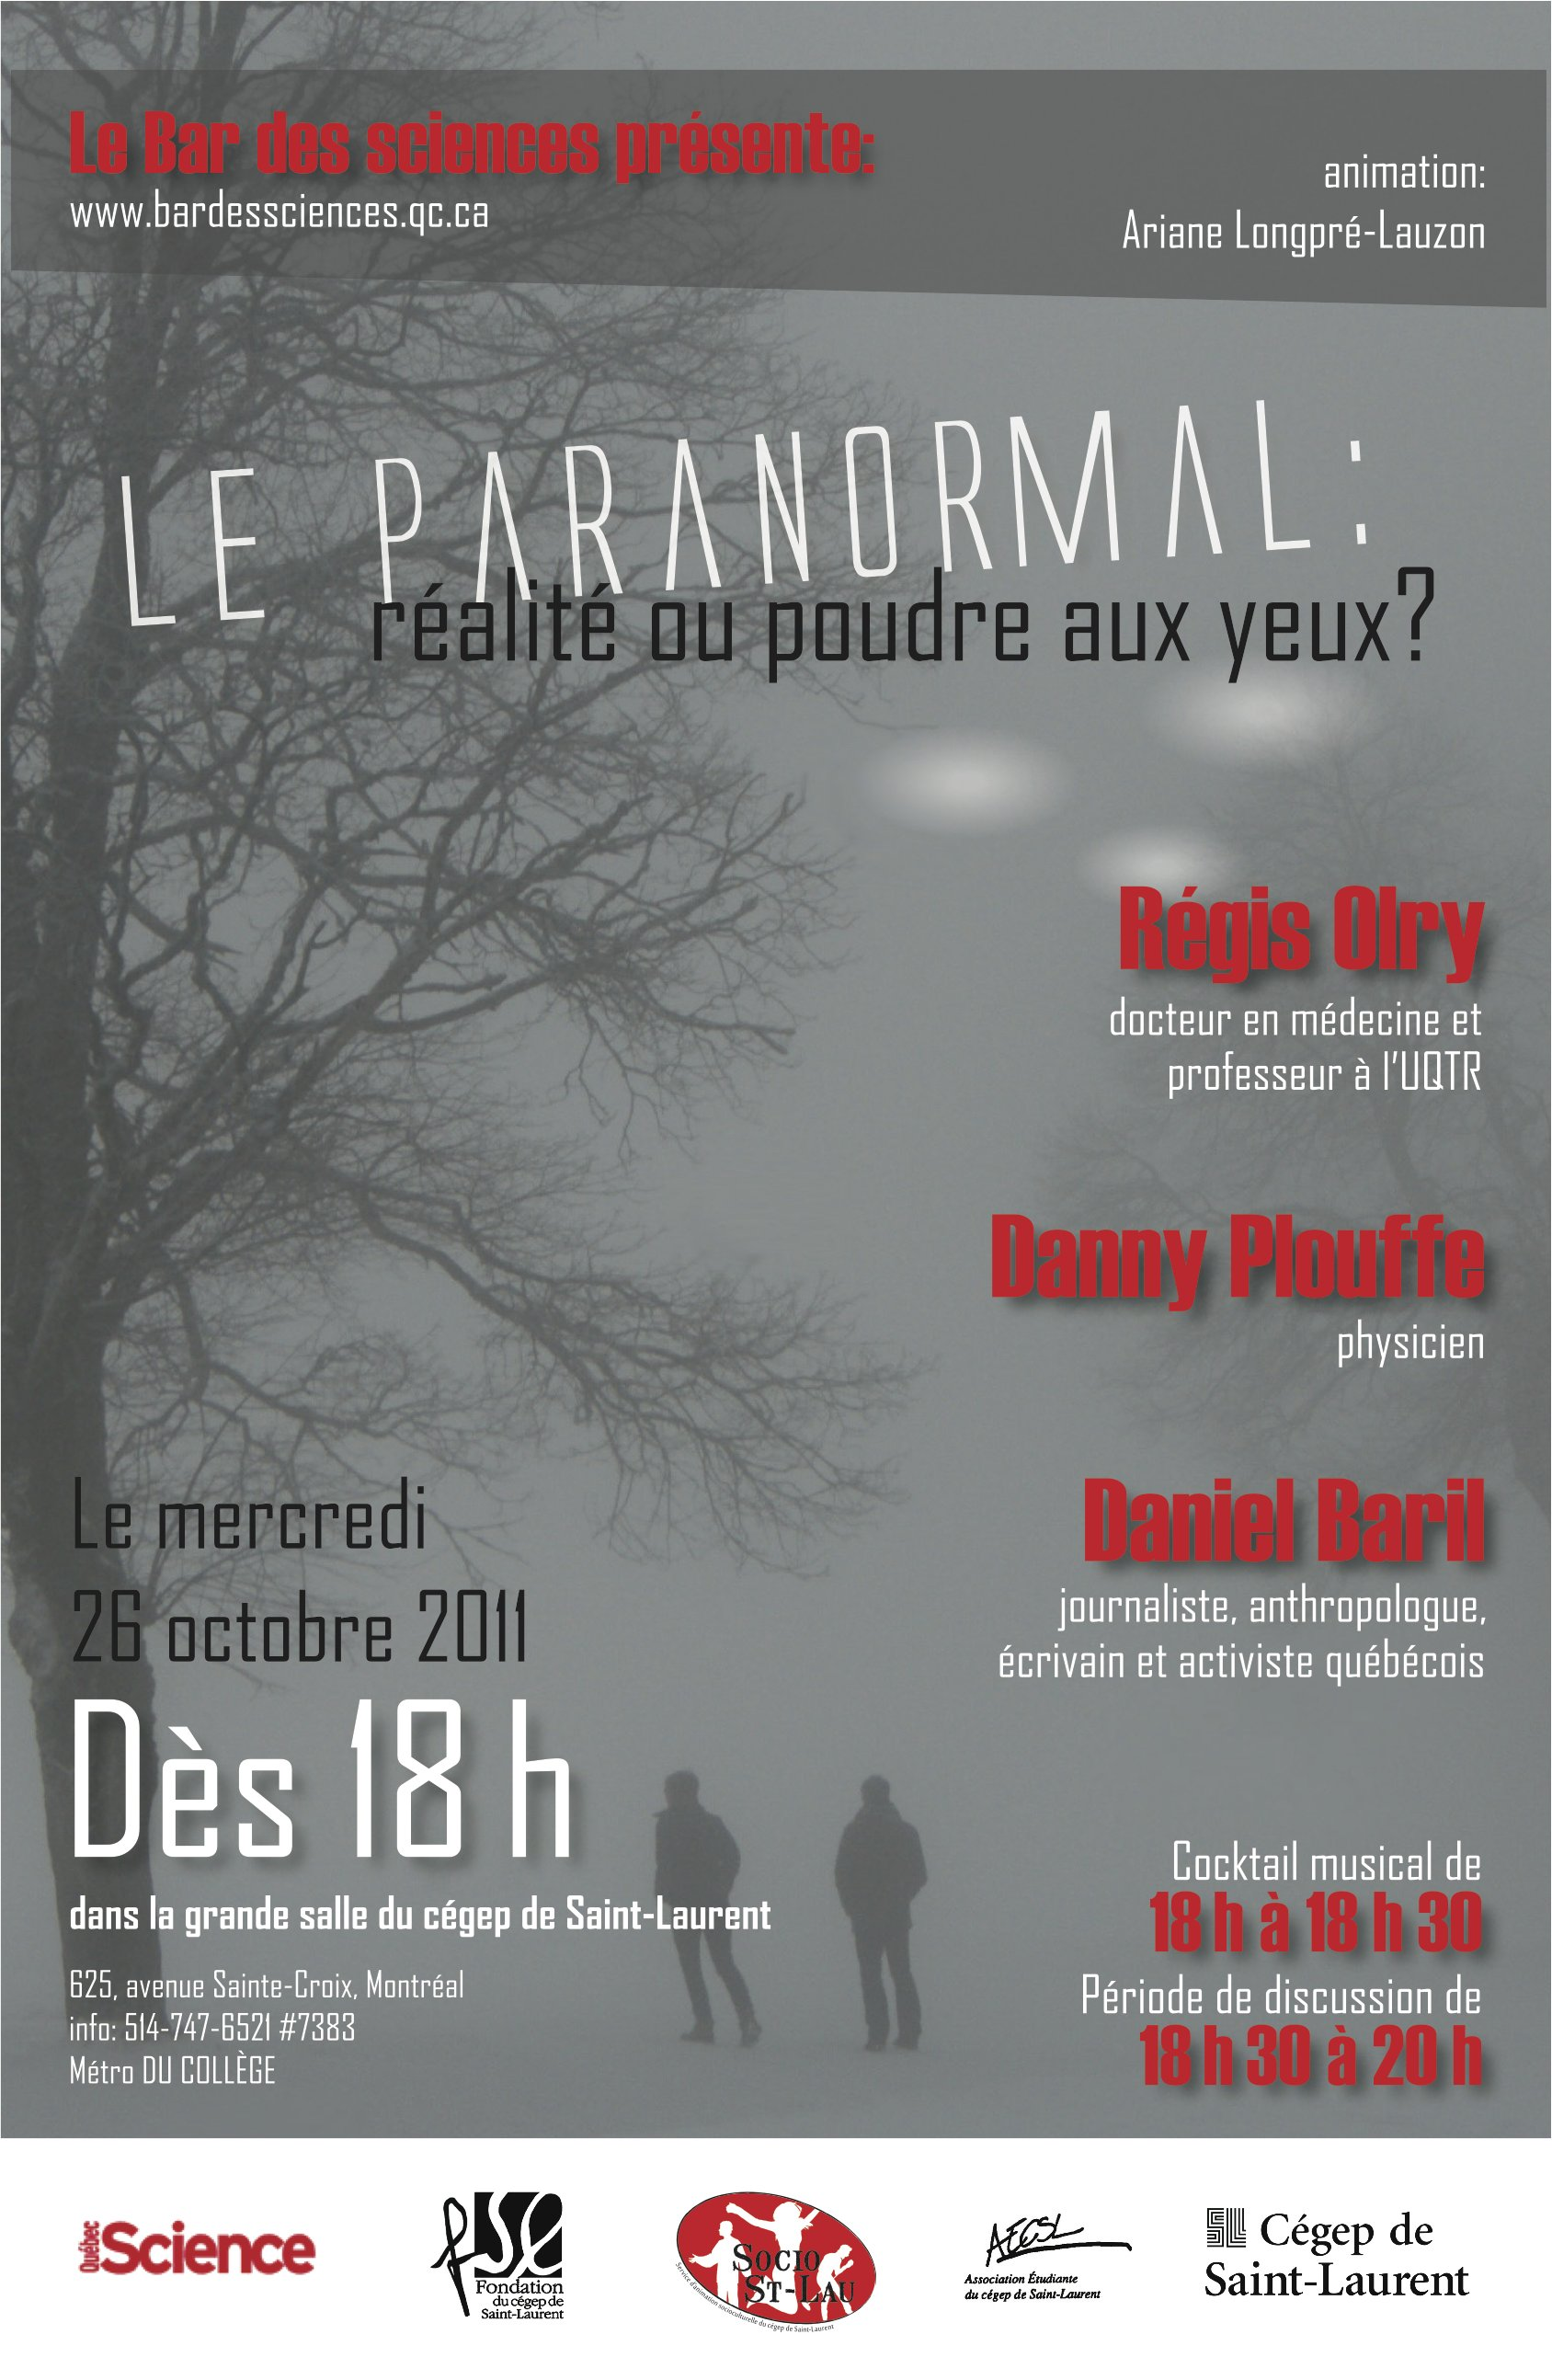 Tva rencontres paranormales